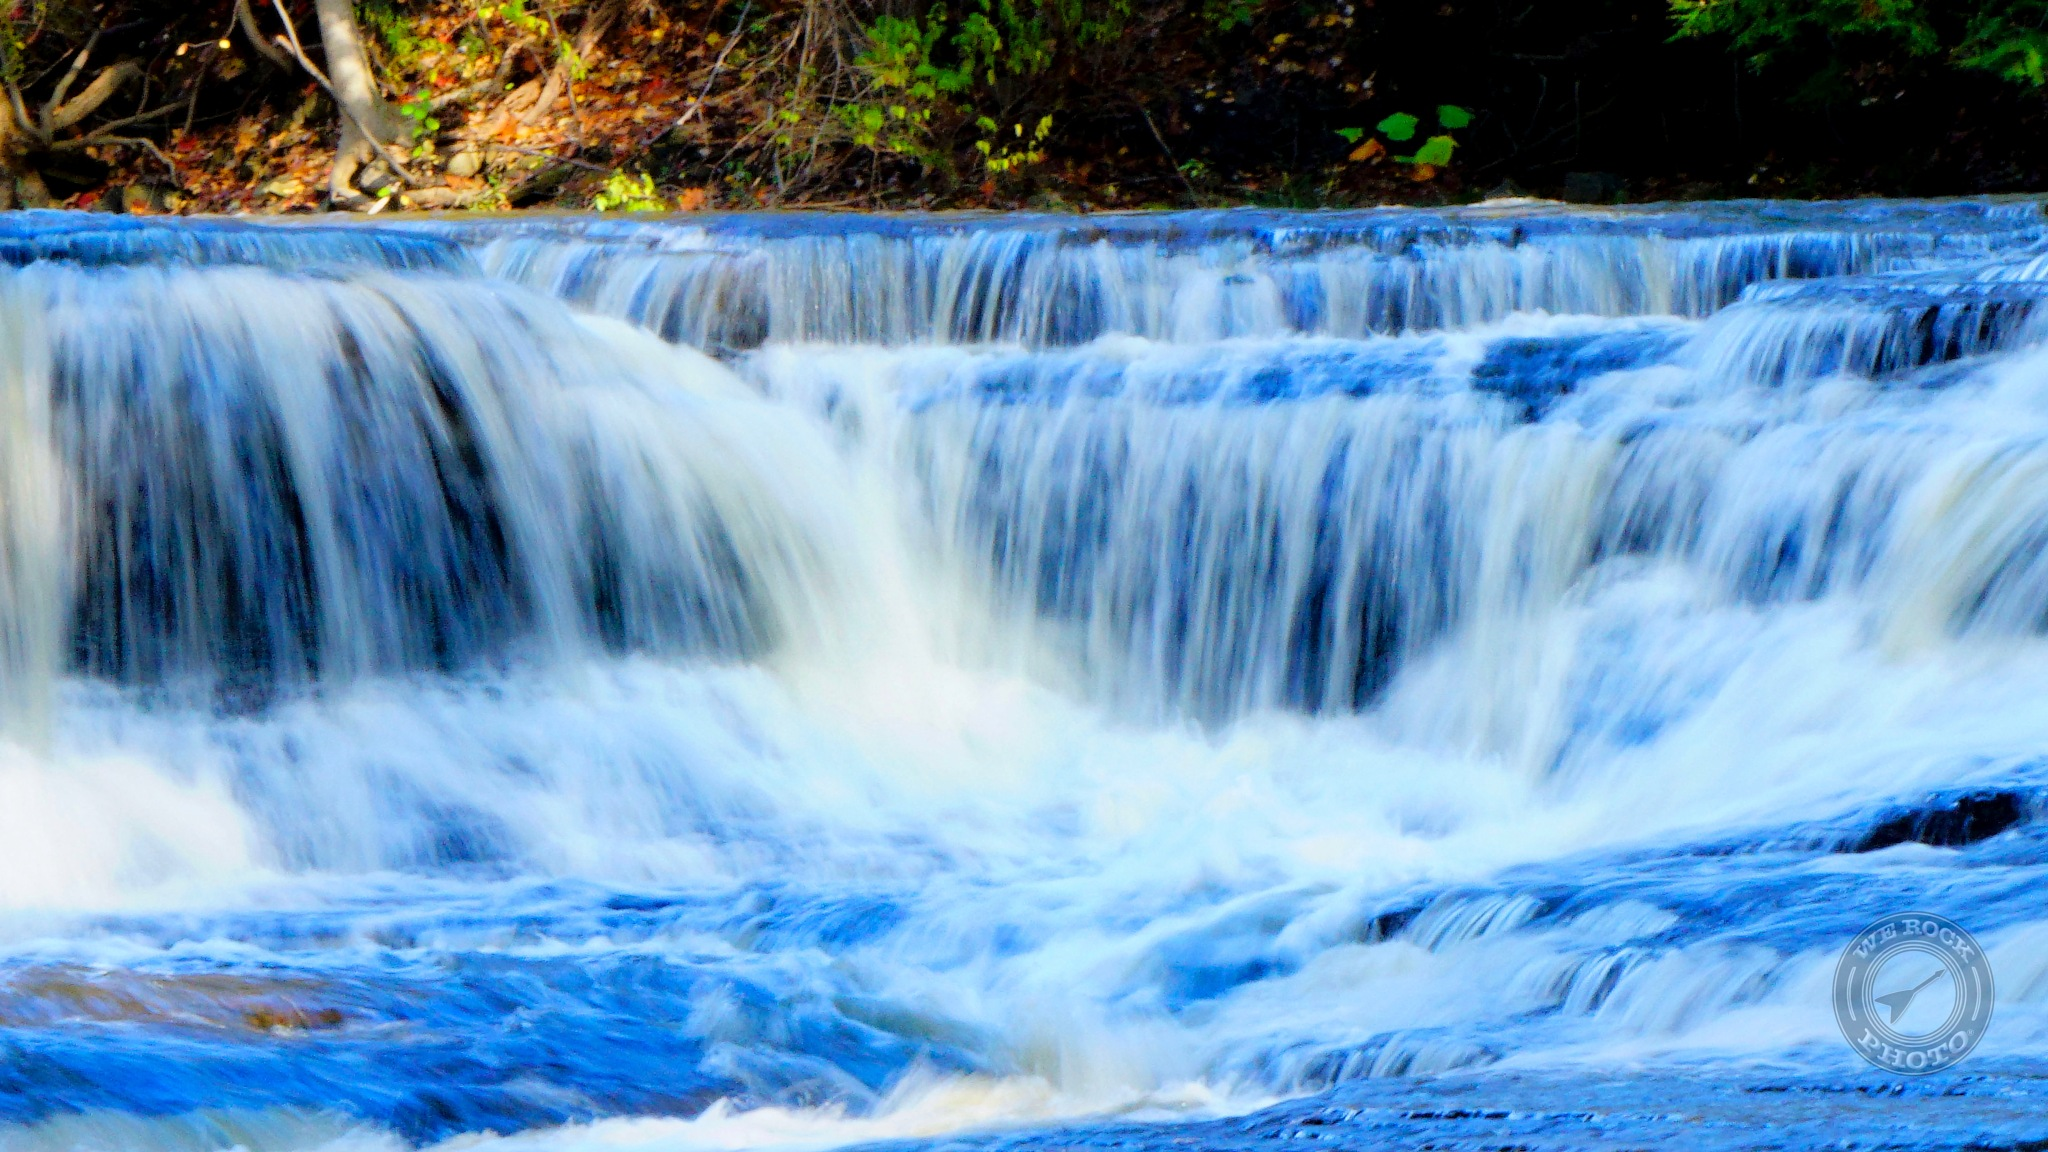 Waterfall - Chagrin River by Dominic T. Flauto